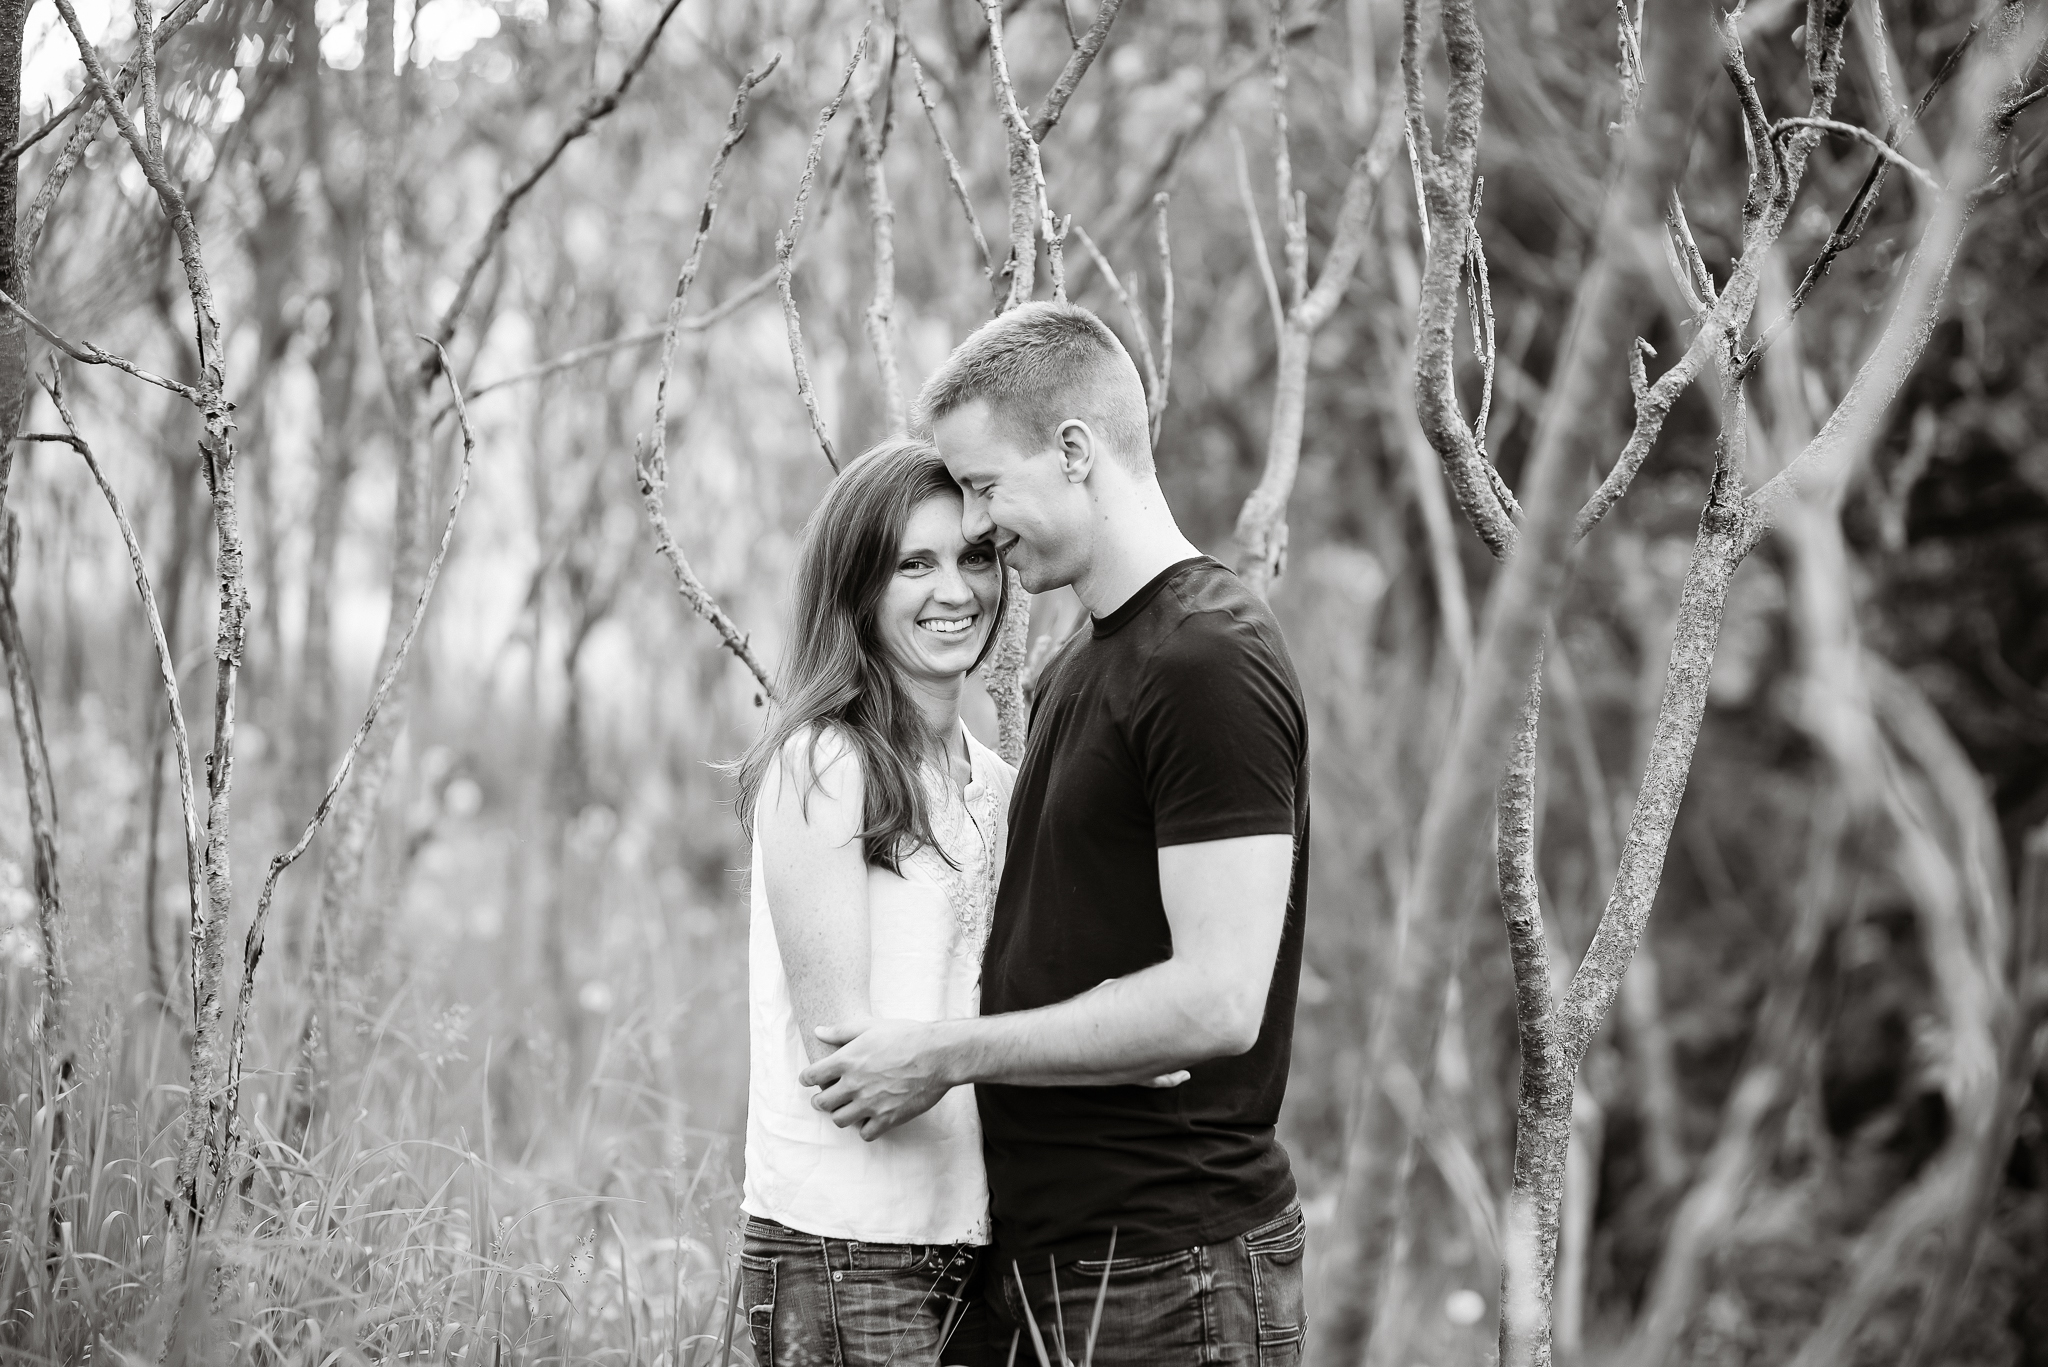 Couples258NaomiLuciennePhotography062019-Edit.jpg